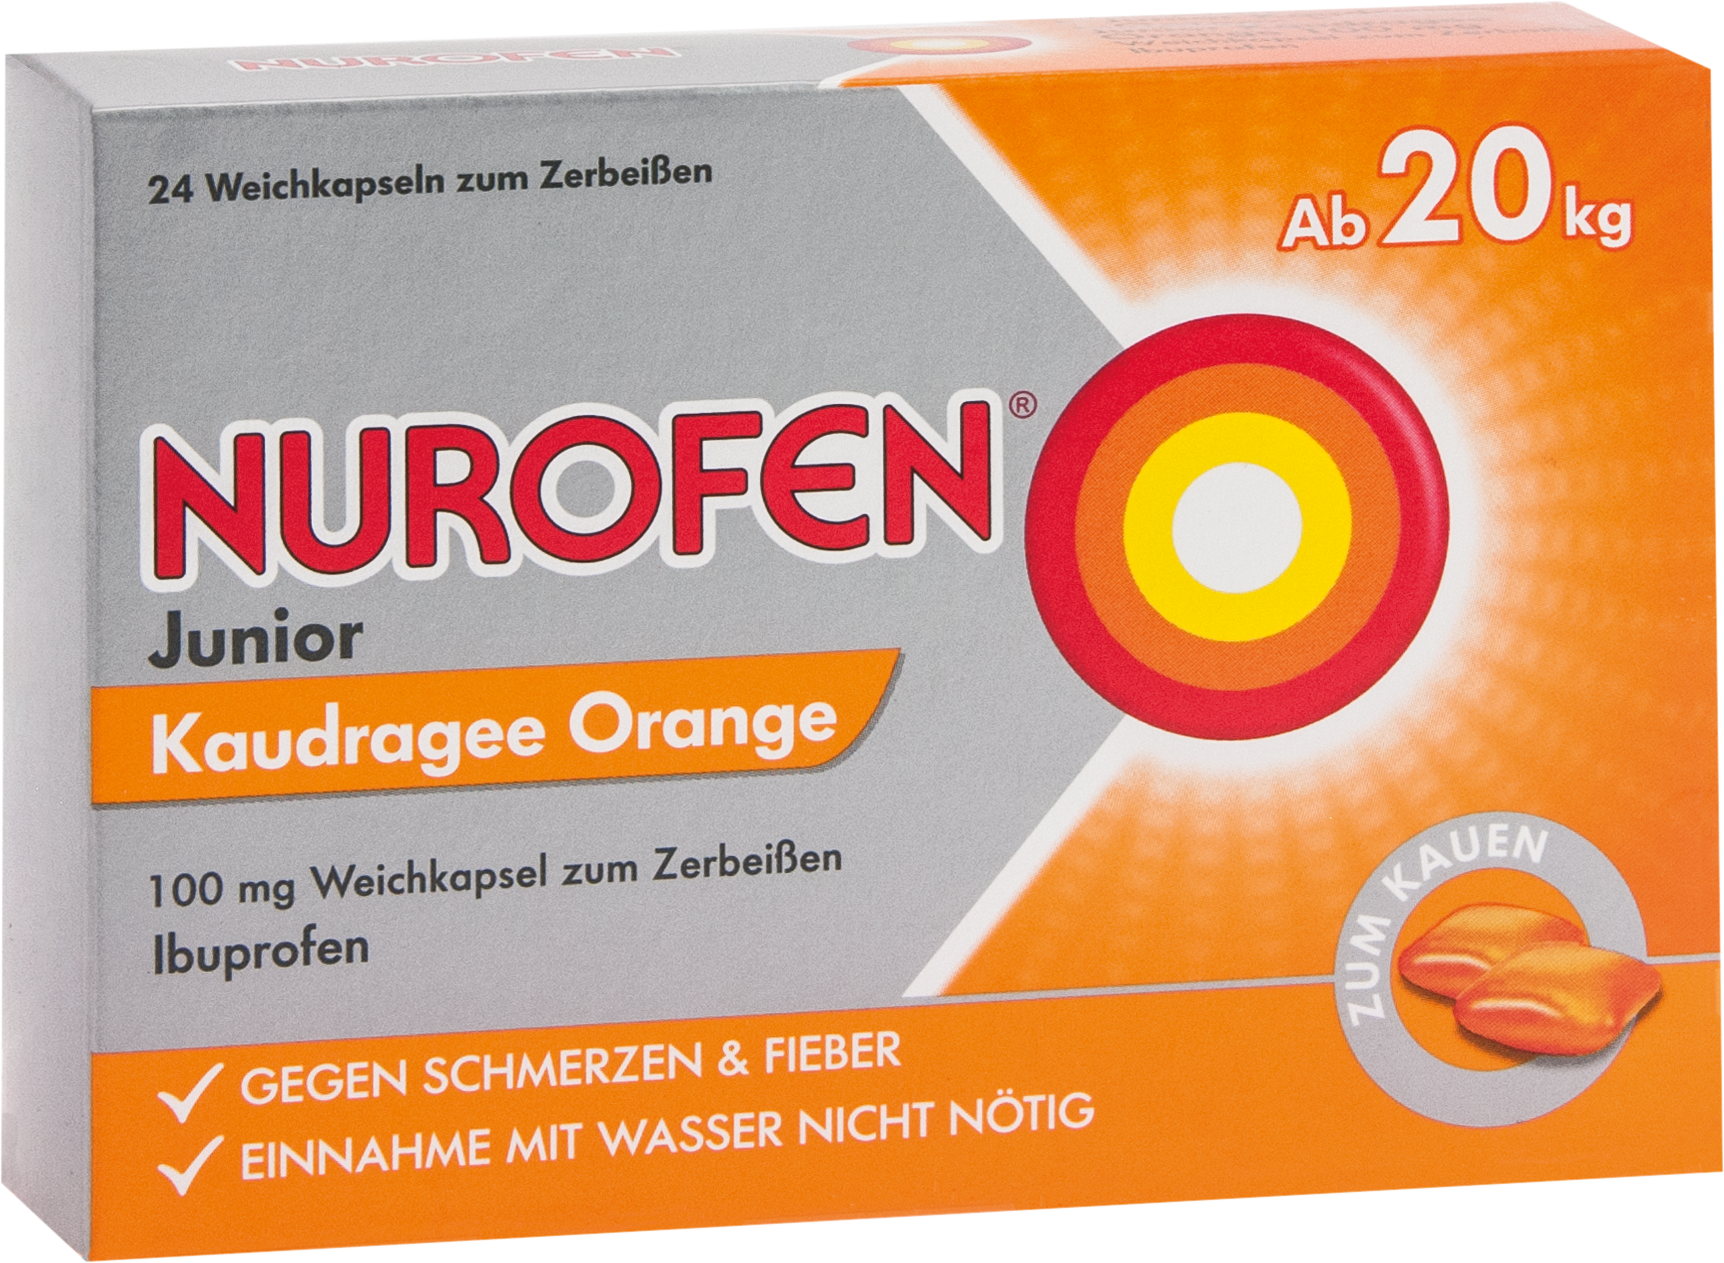 Nurofen Junior Kaudragee Orange 100mg